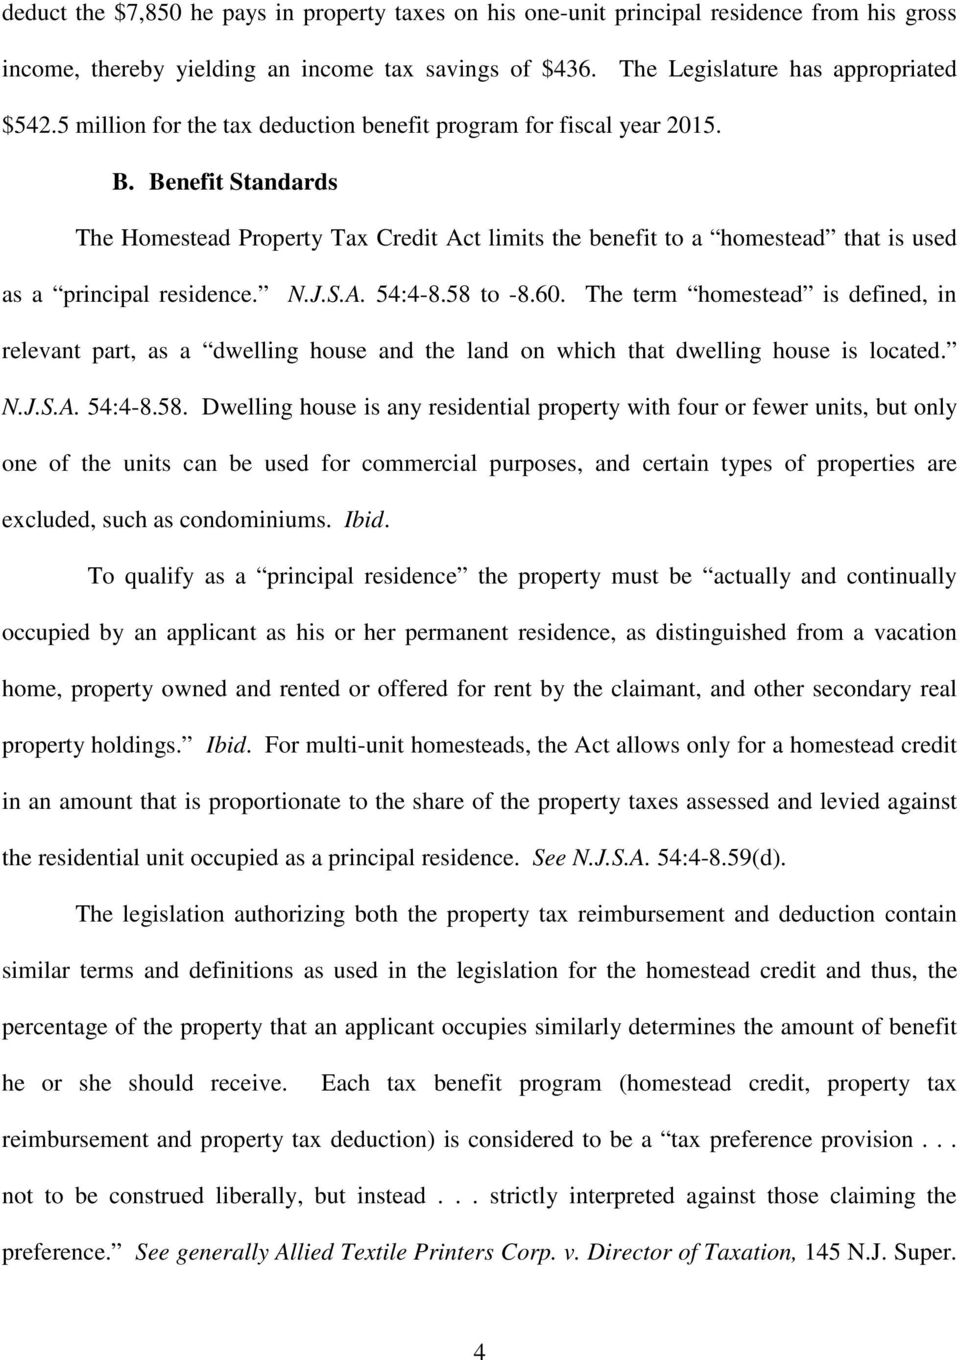 Benefit Standards The Homestead Property Tax Credit Act limits the benefit to a homestead that is used as a principal residence. N.J.S.A. 54:4-8.58 to -8.60.